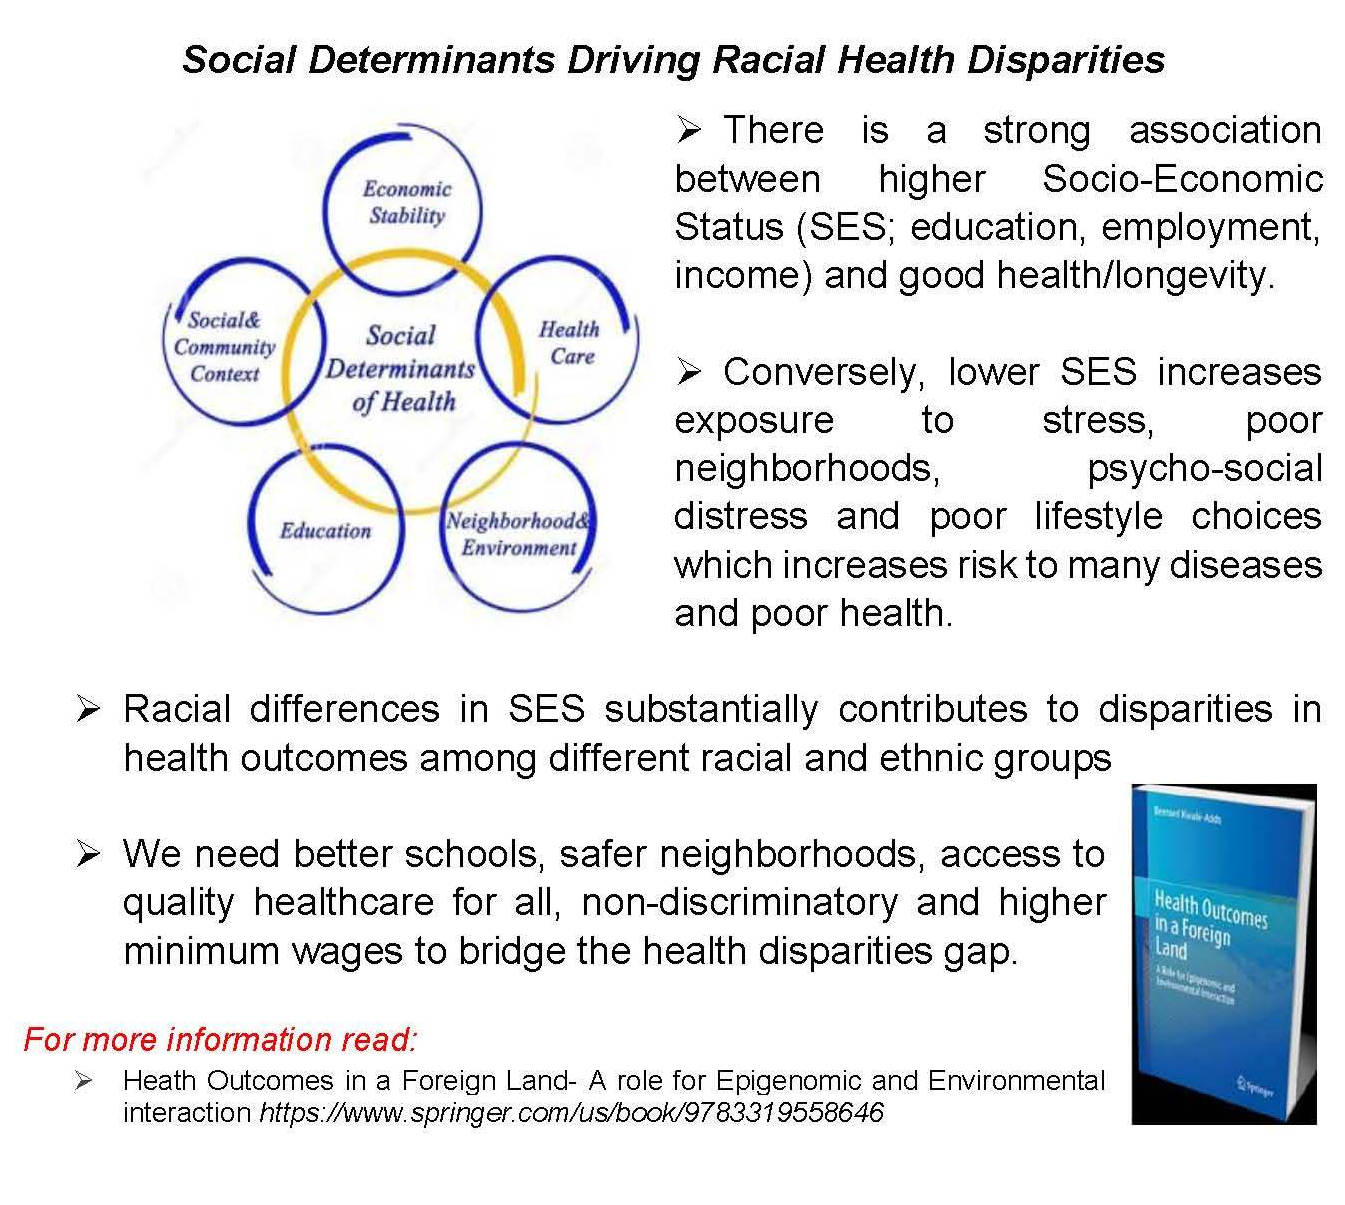 Social Determinants Driving Racial Health Disparities